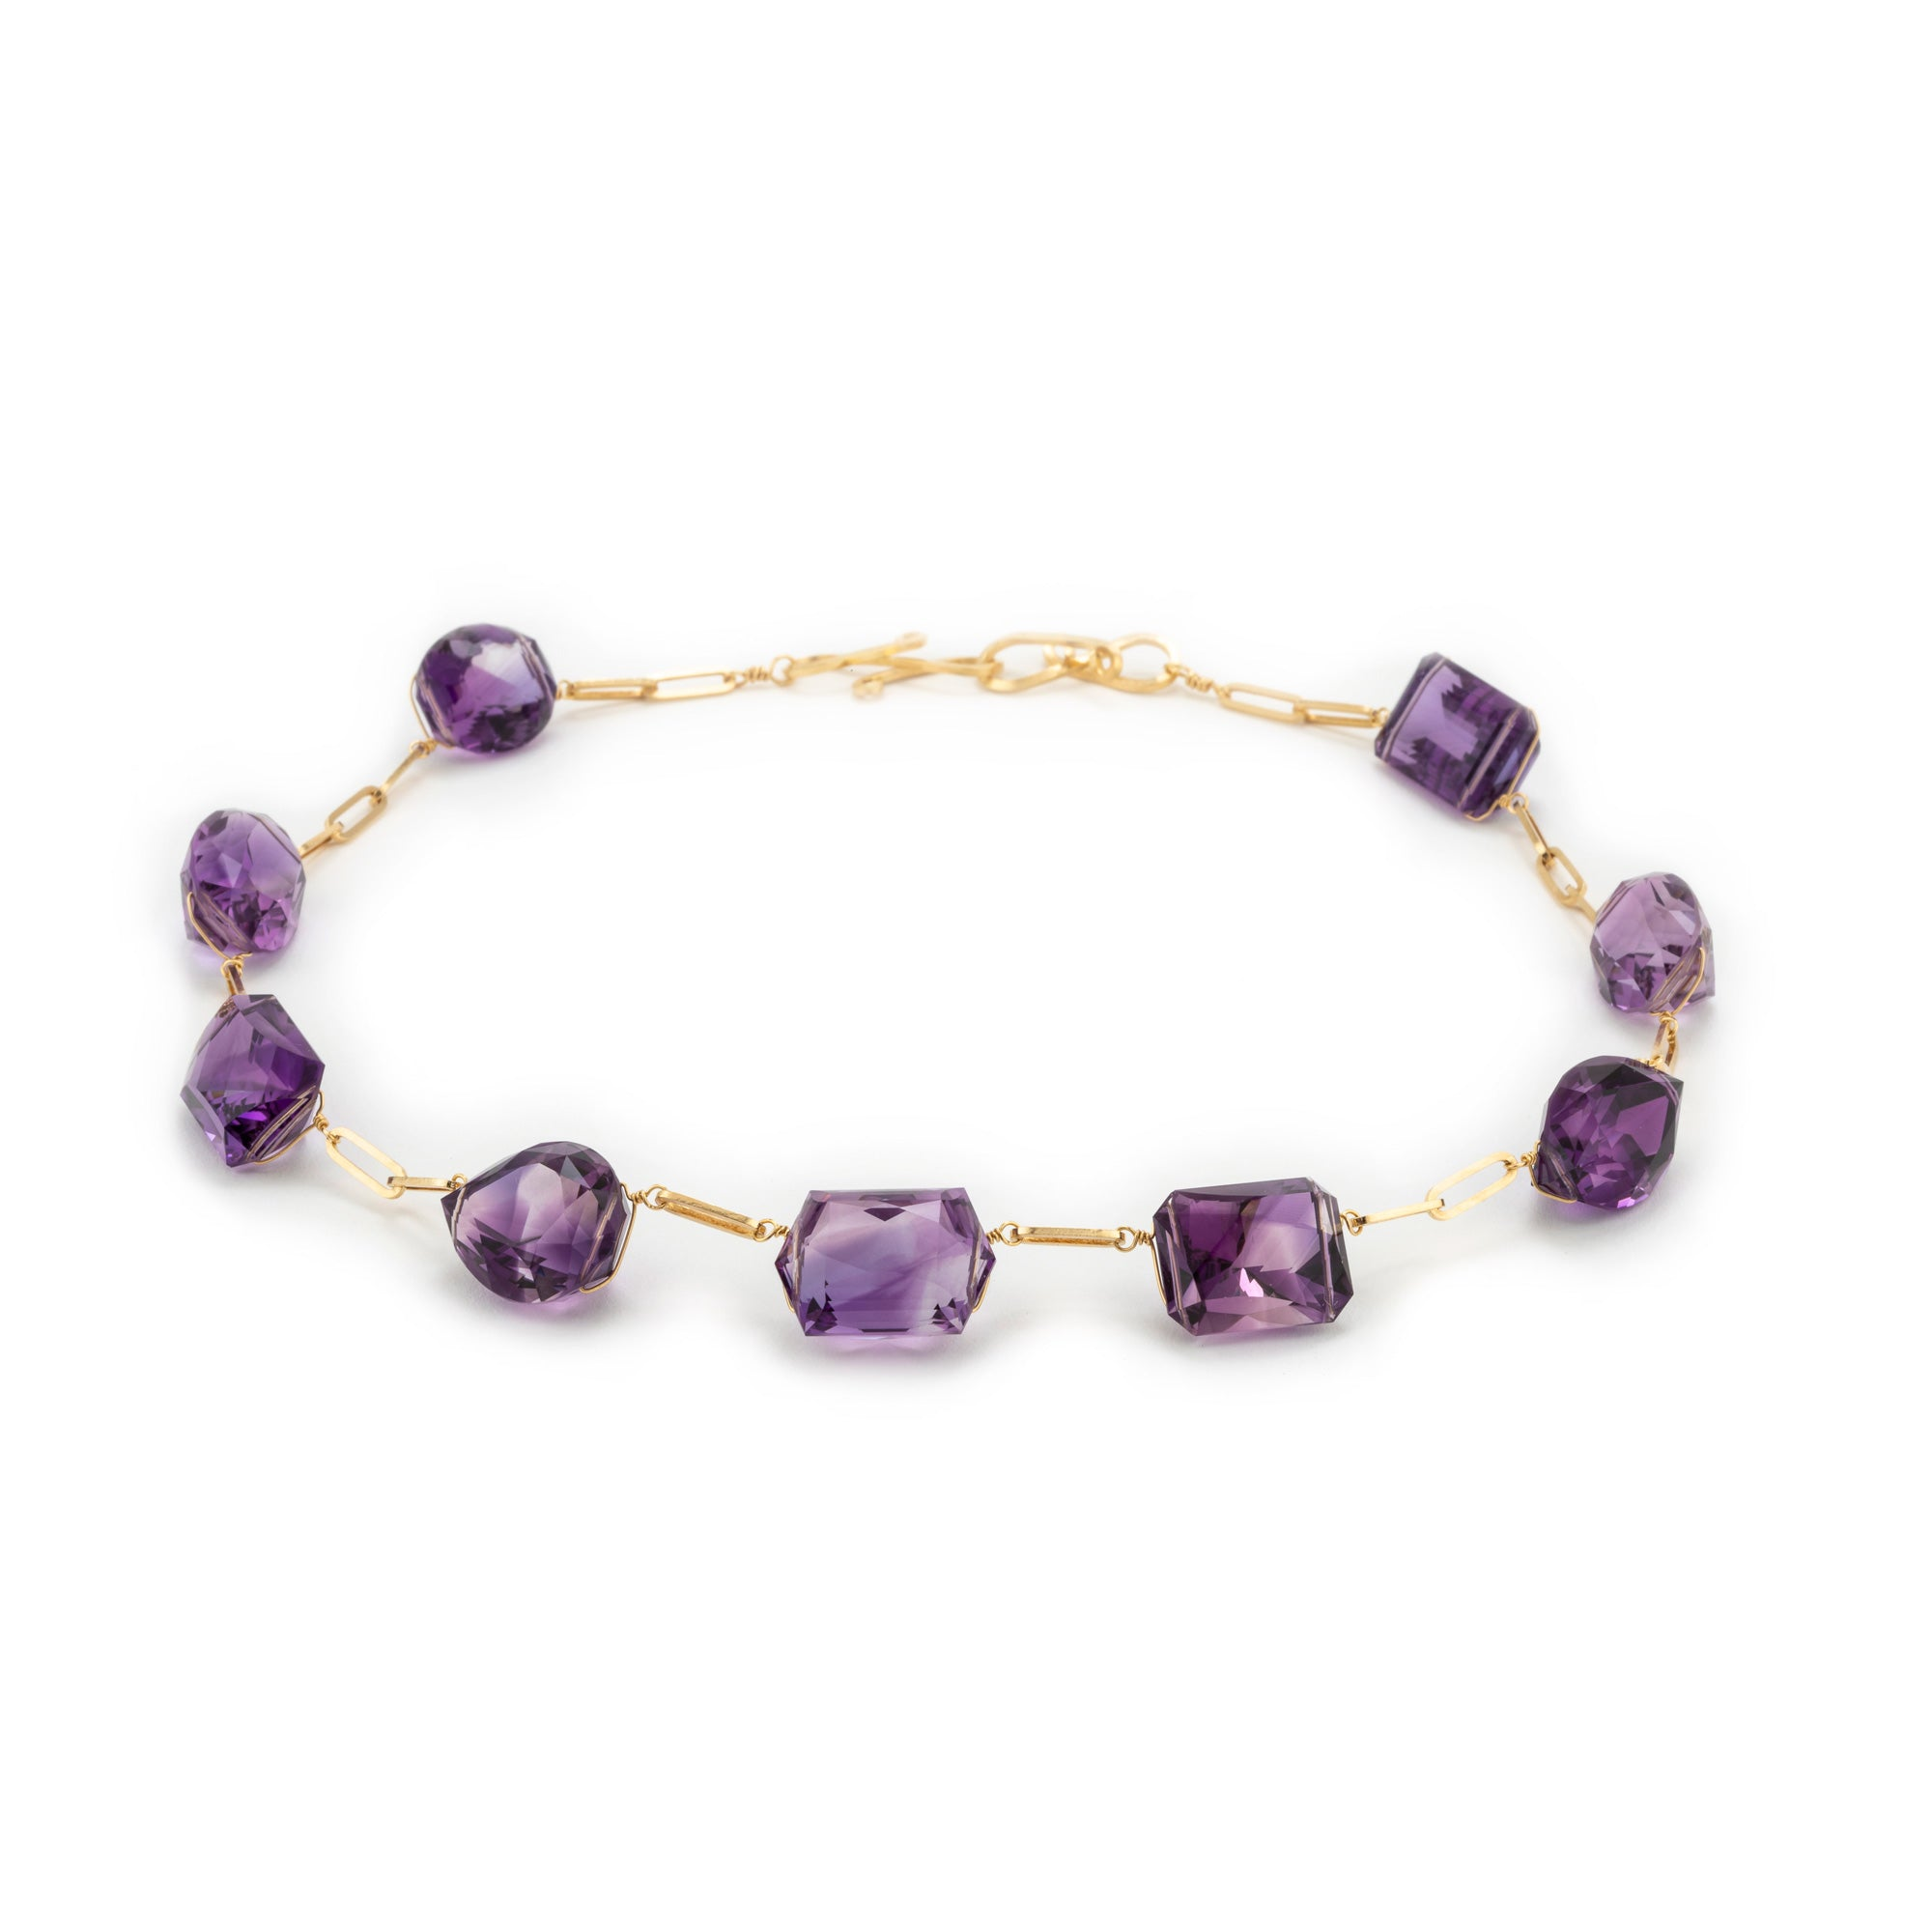 Grace ix amethyst necklace